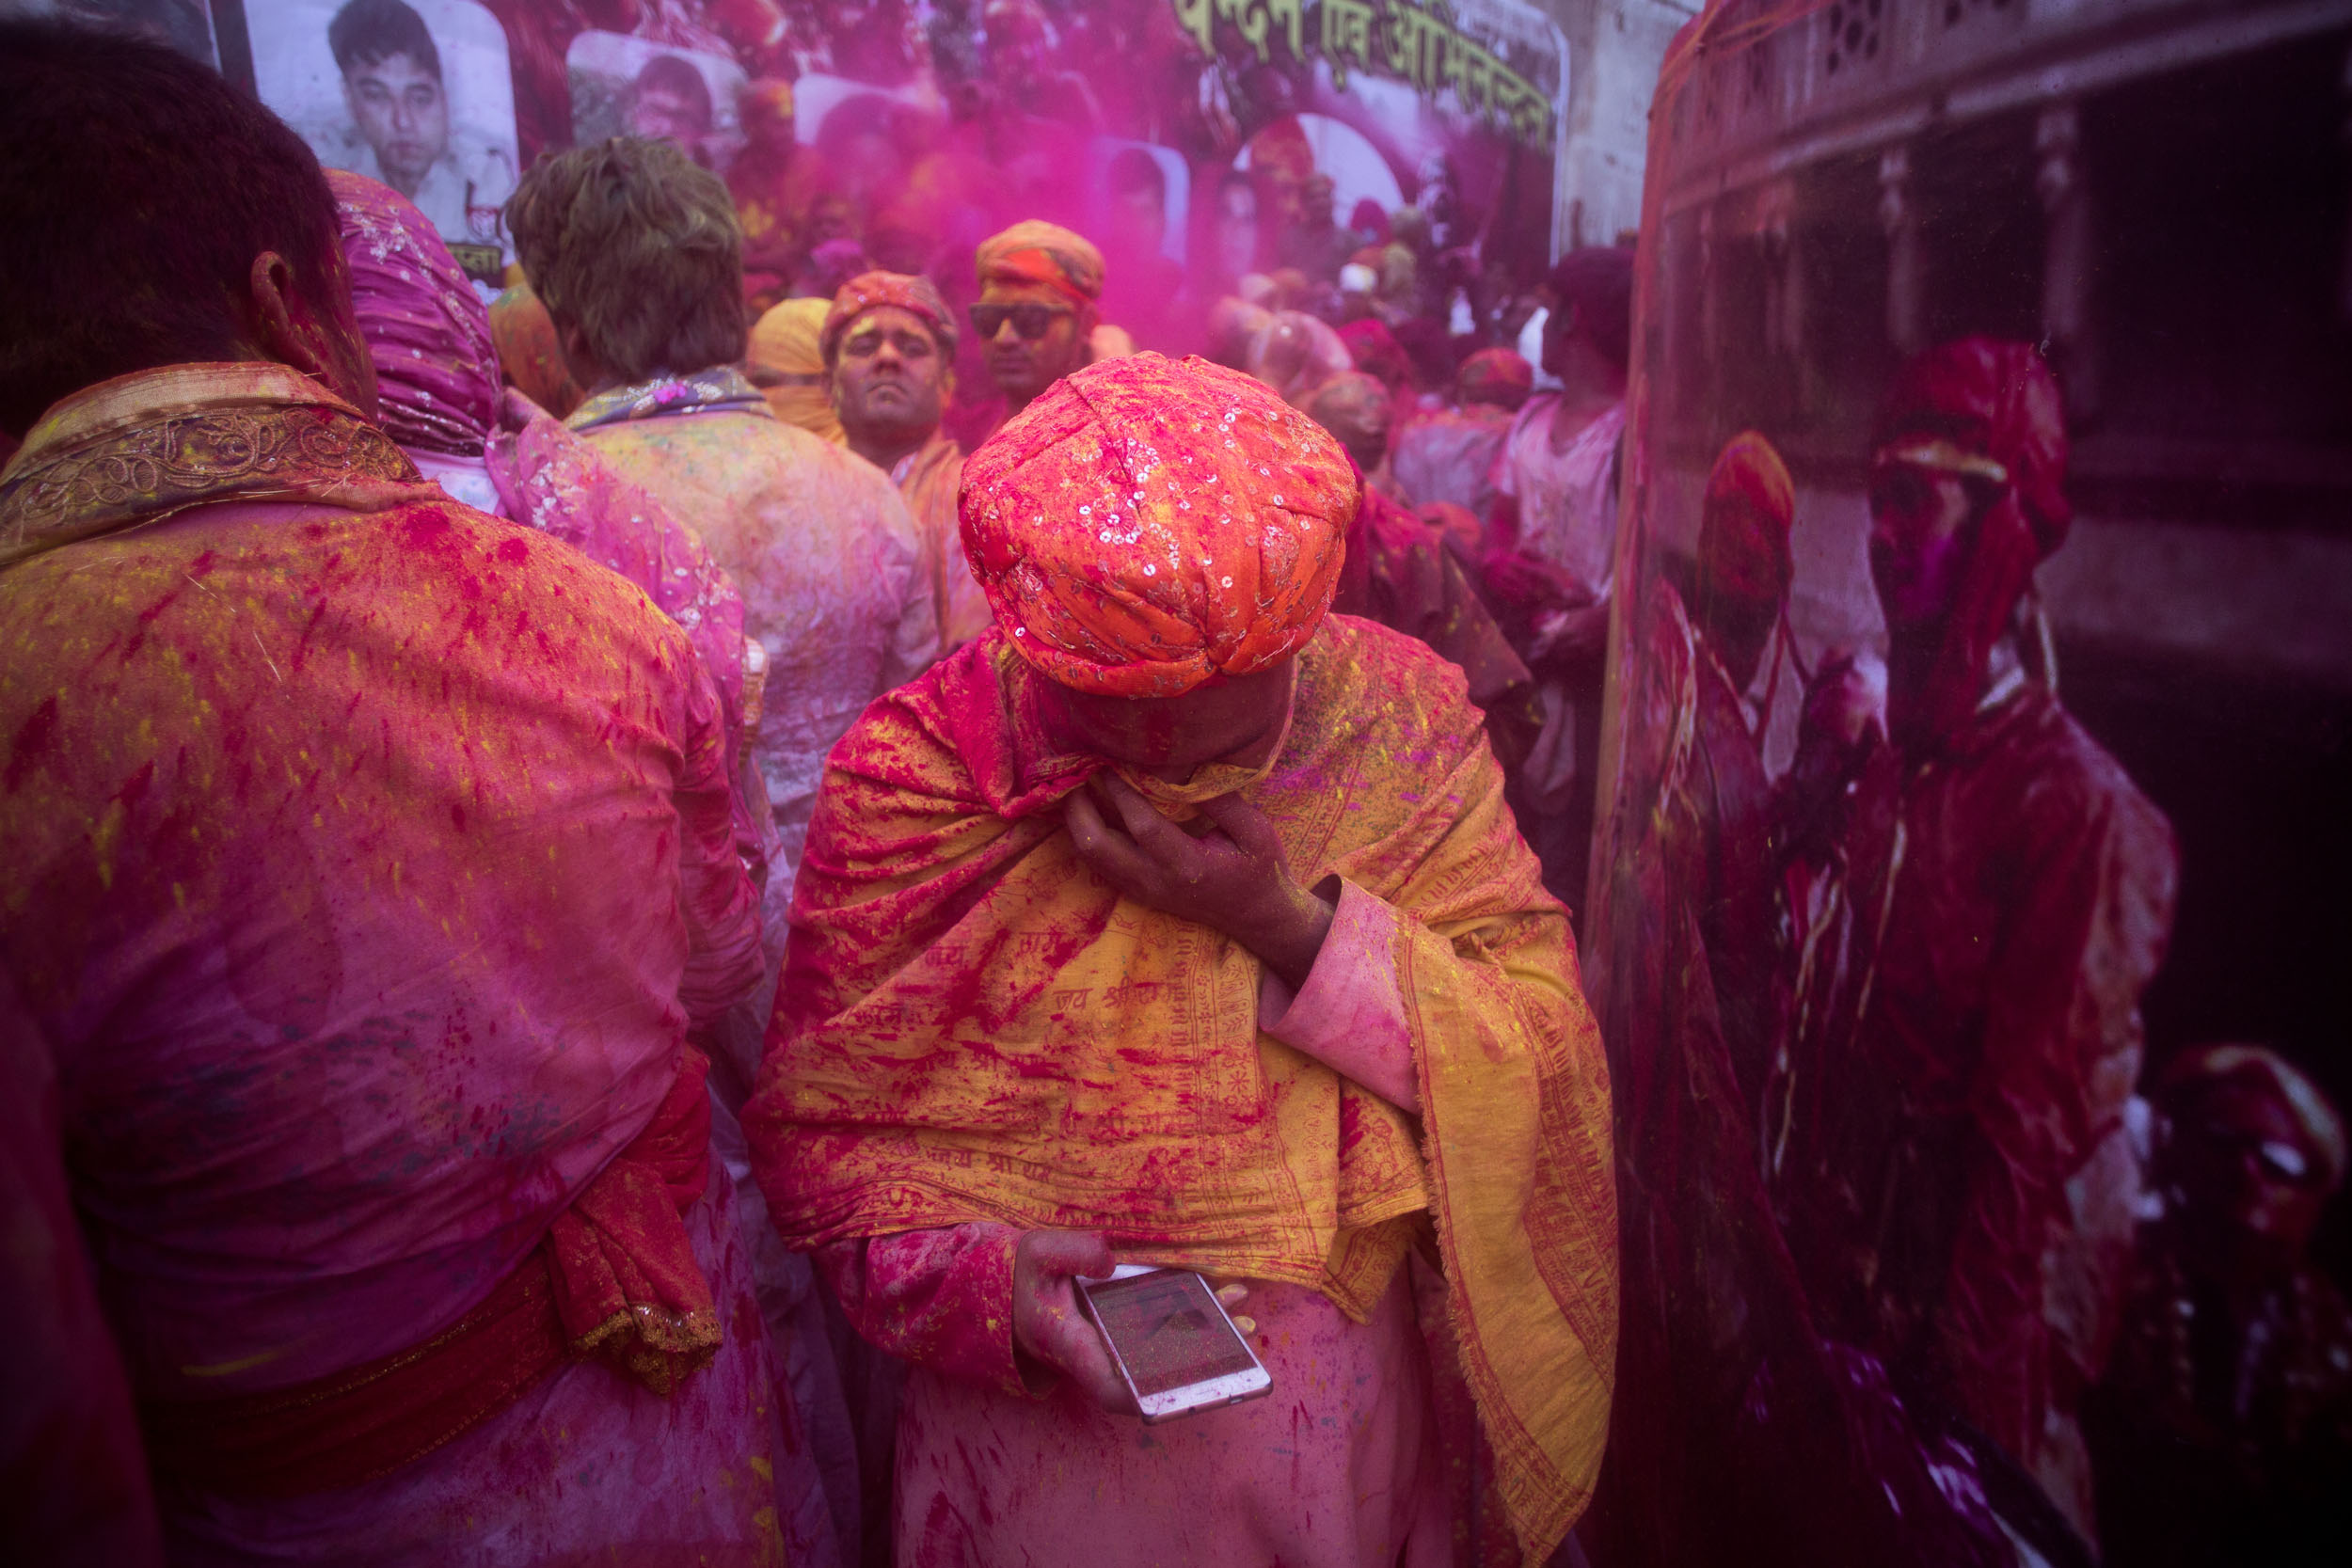 Sindhur_Photography_Travel_People_Holi-30.JPG